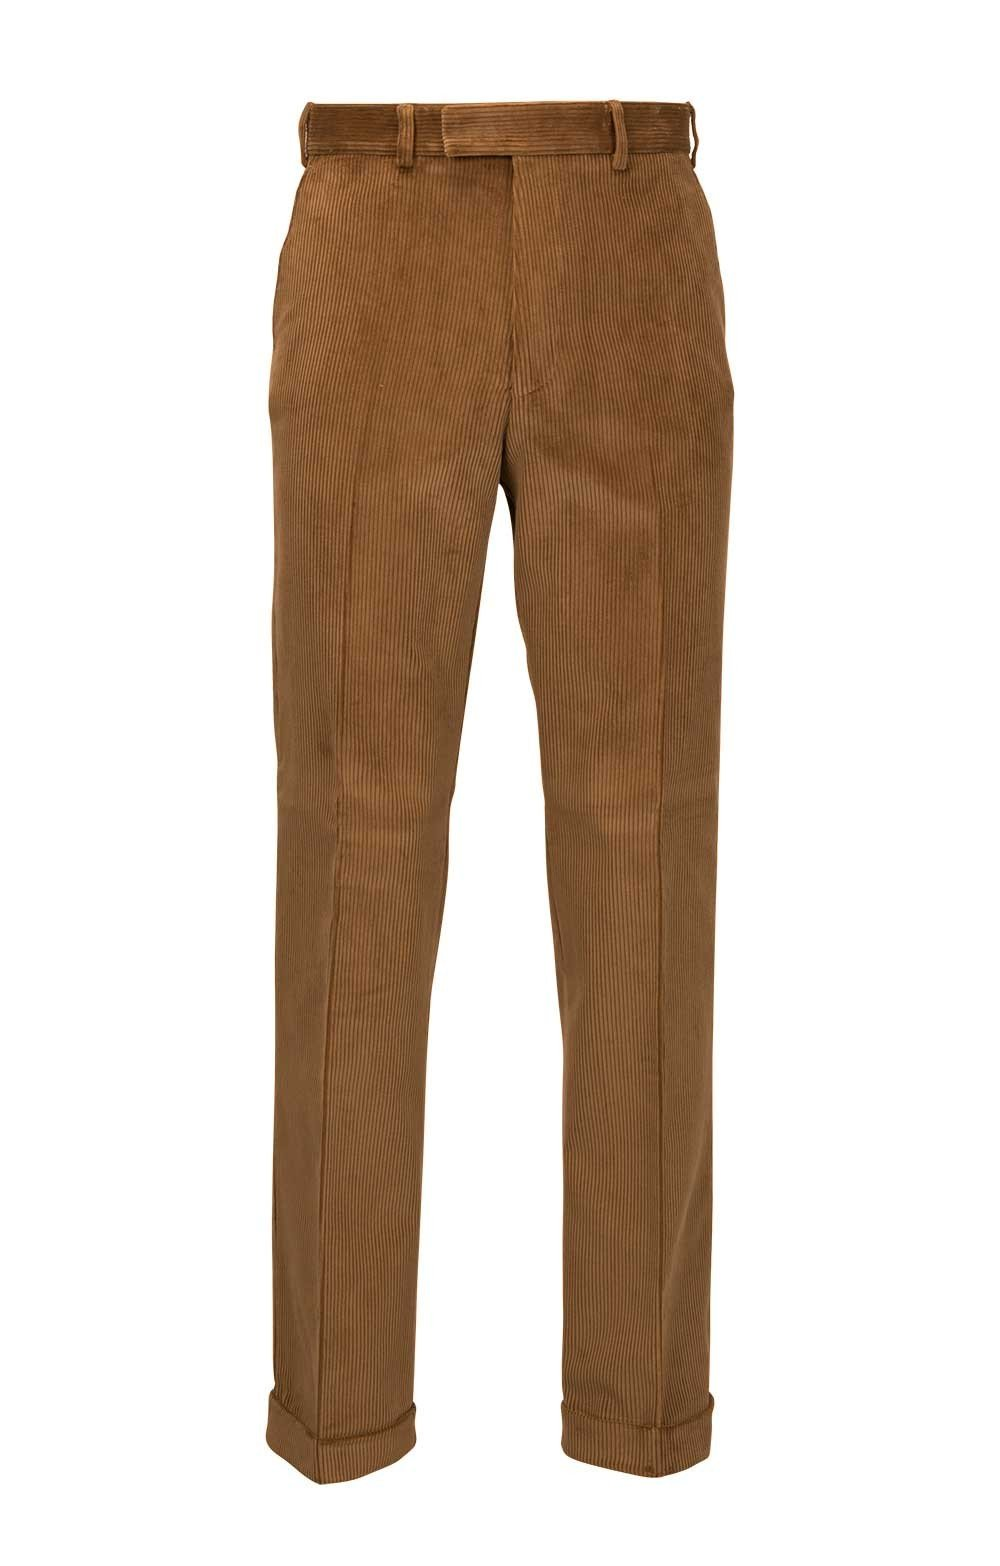 c0658497 The House of Bruar Heavyweight Cord Trousers - House of Bruar